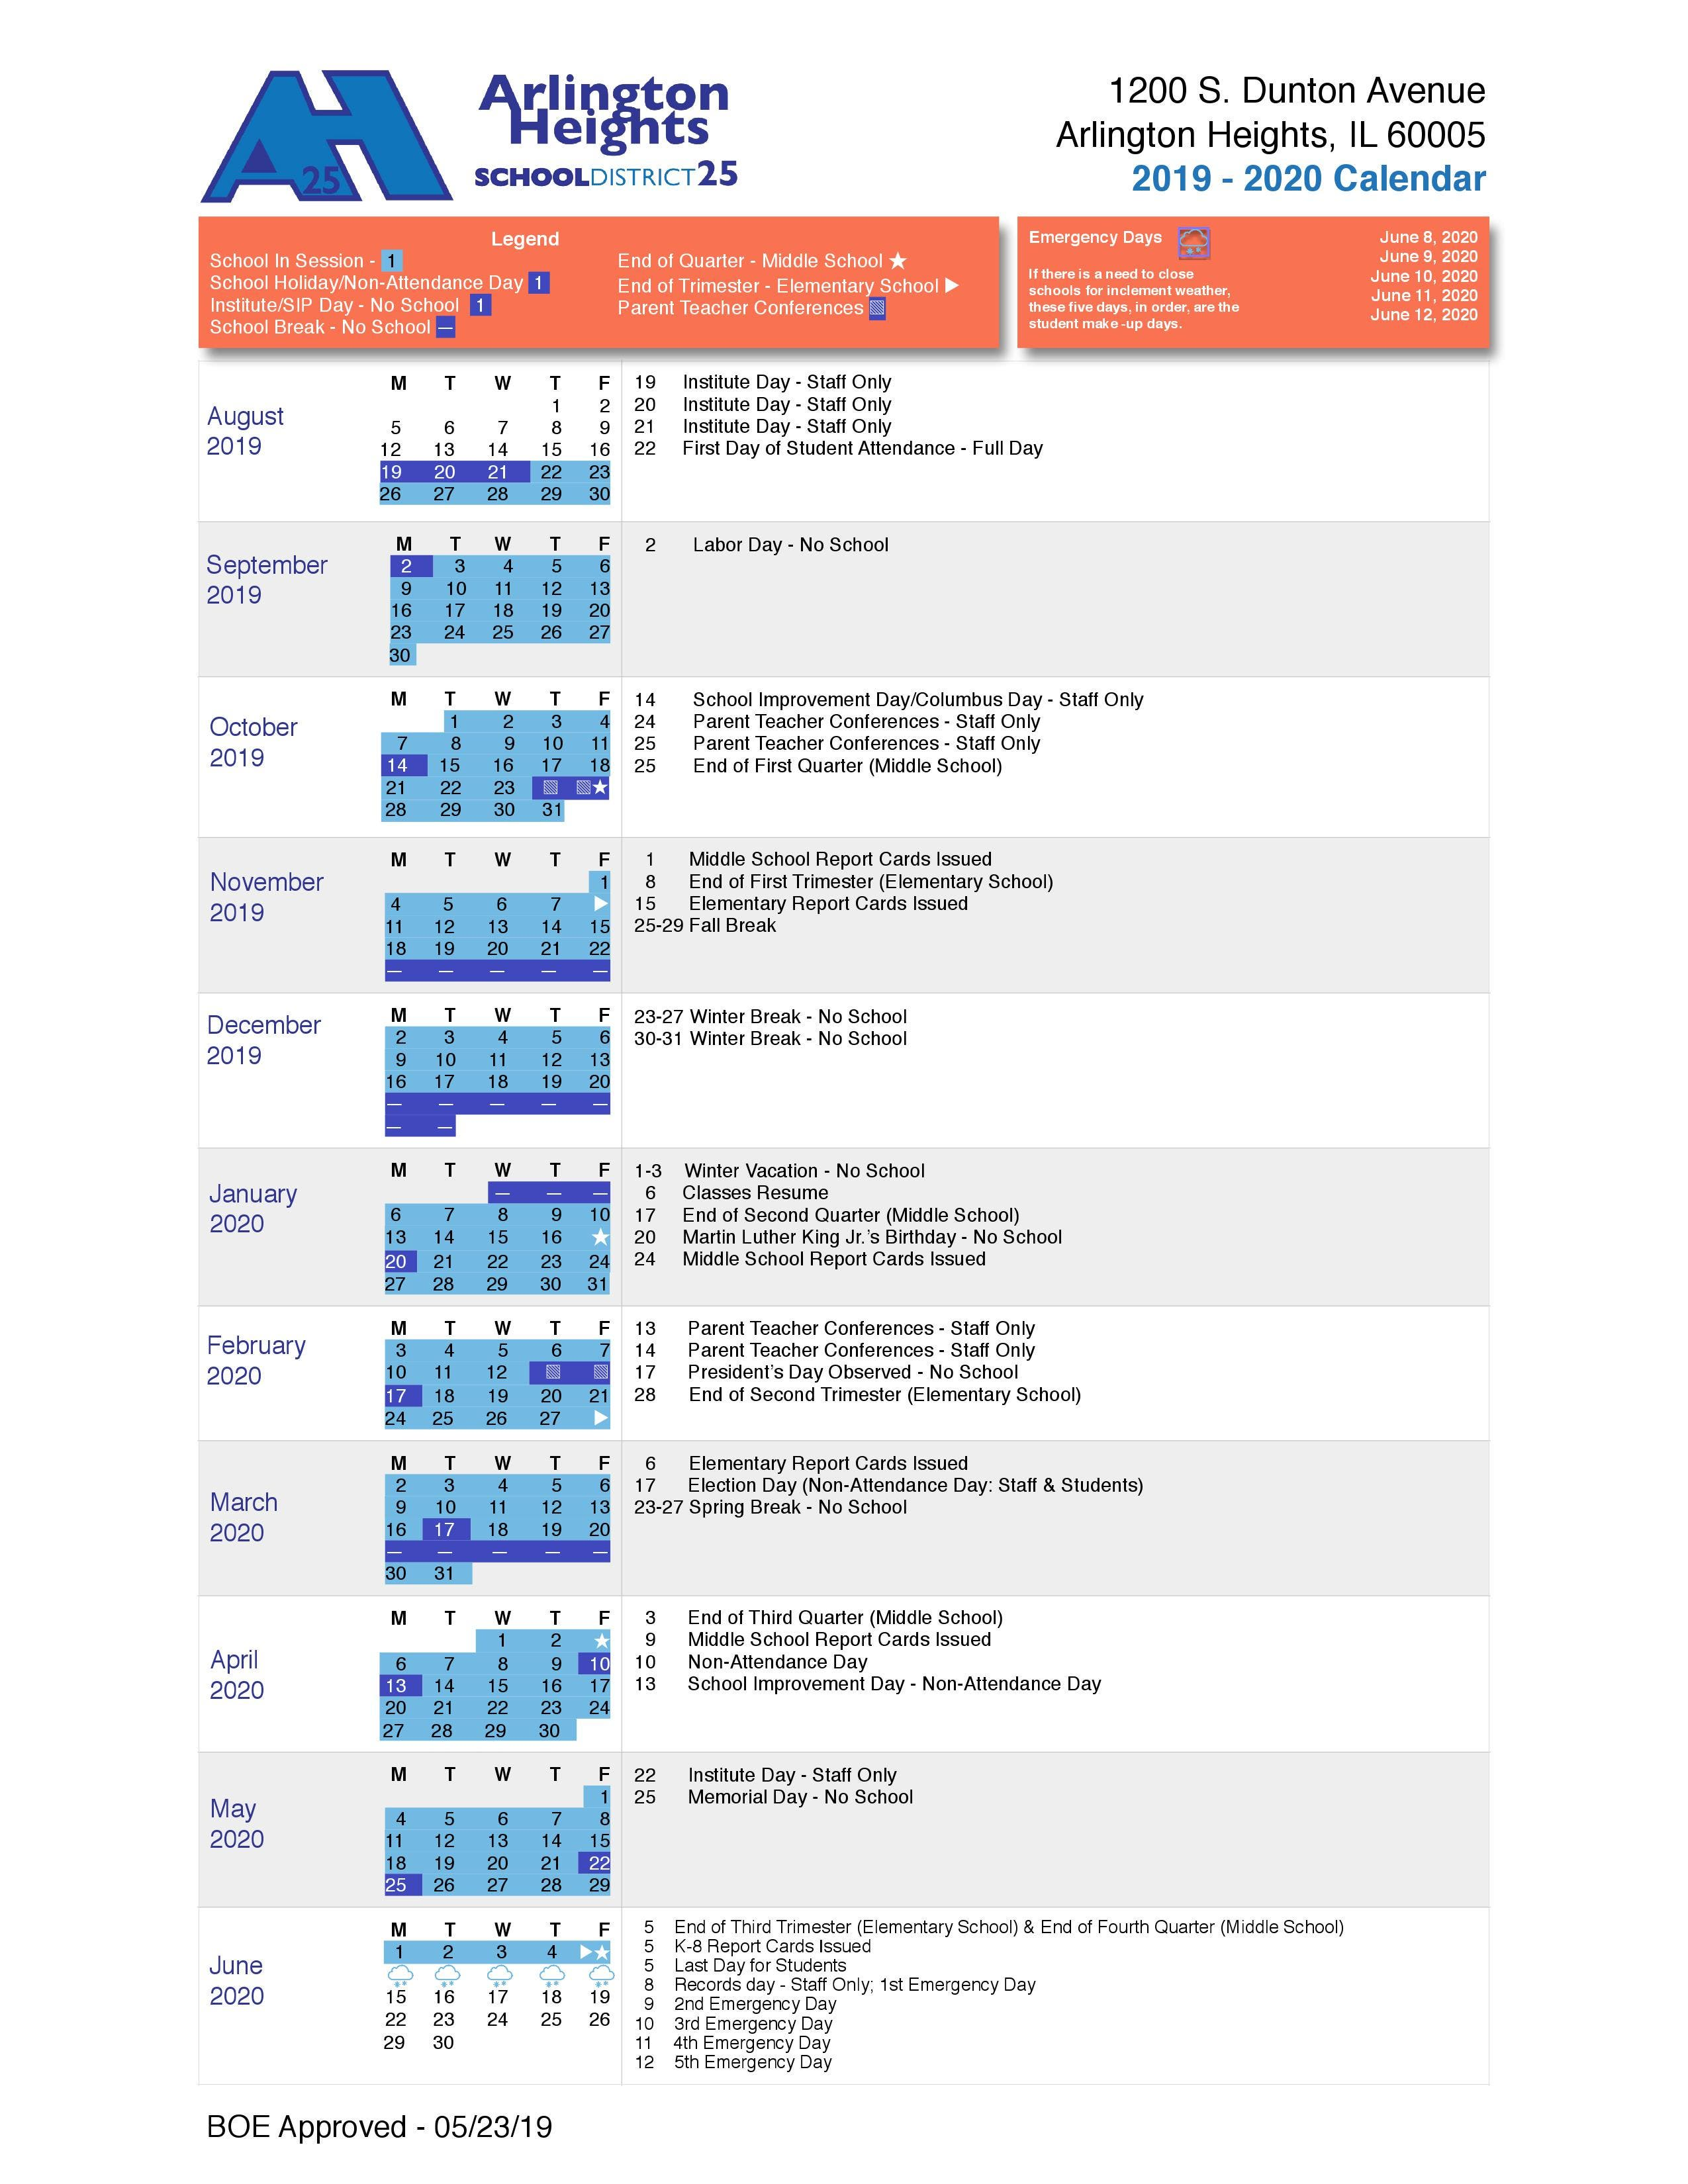 District 25 School Calendar 2019-2020: Important Dates to Know